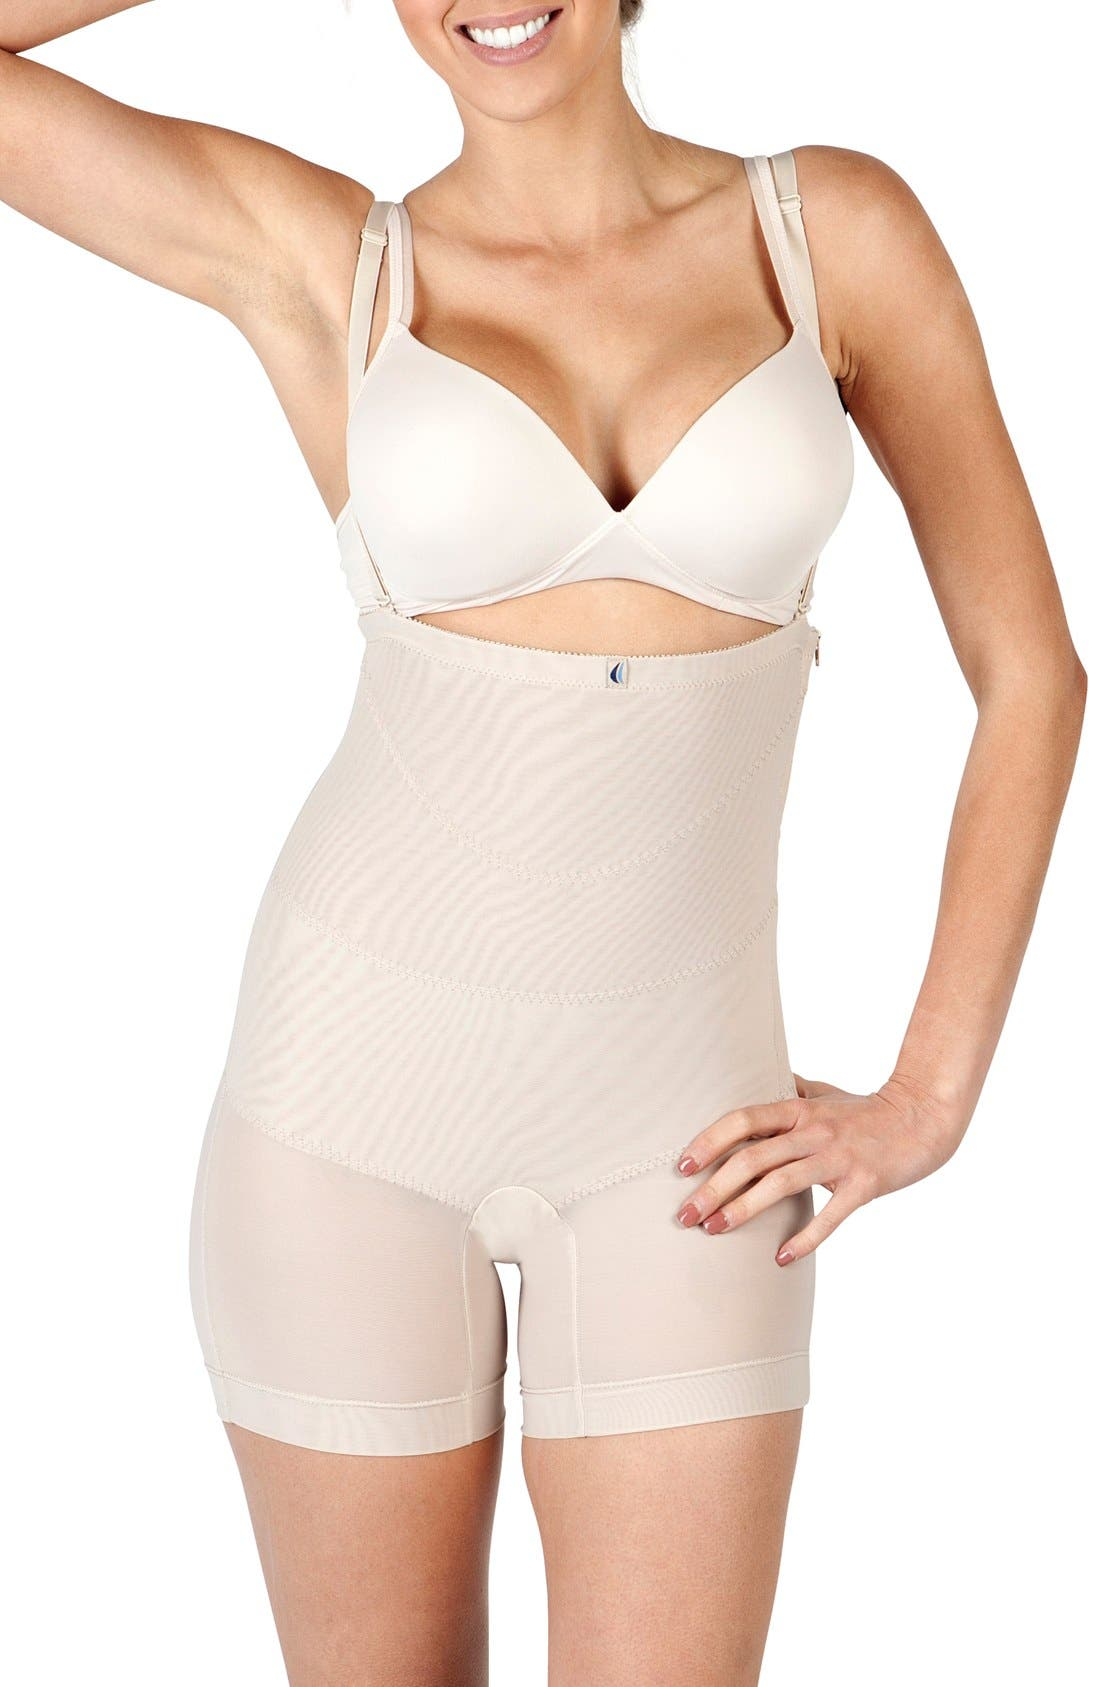 'Sienna' Post C-Section Garment,                         Main,                         color, Nude